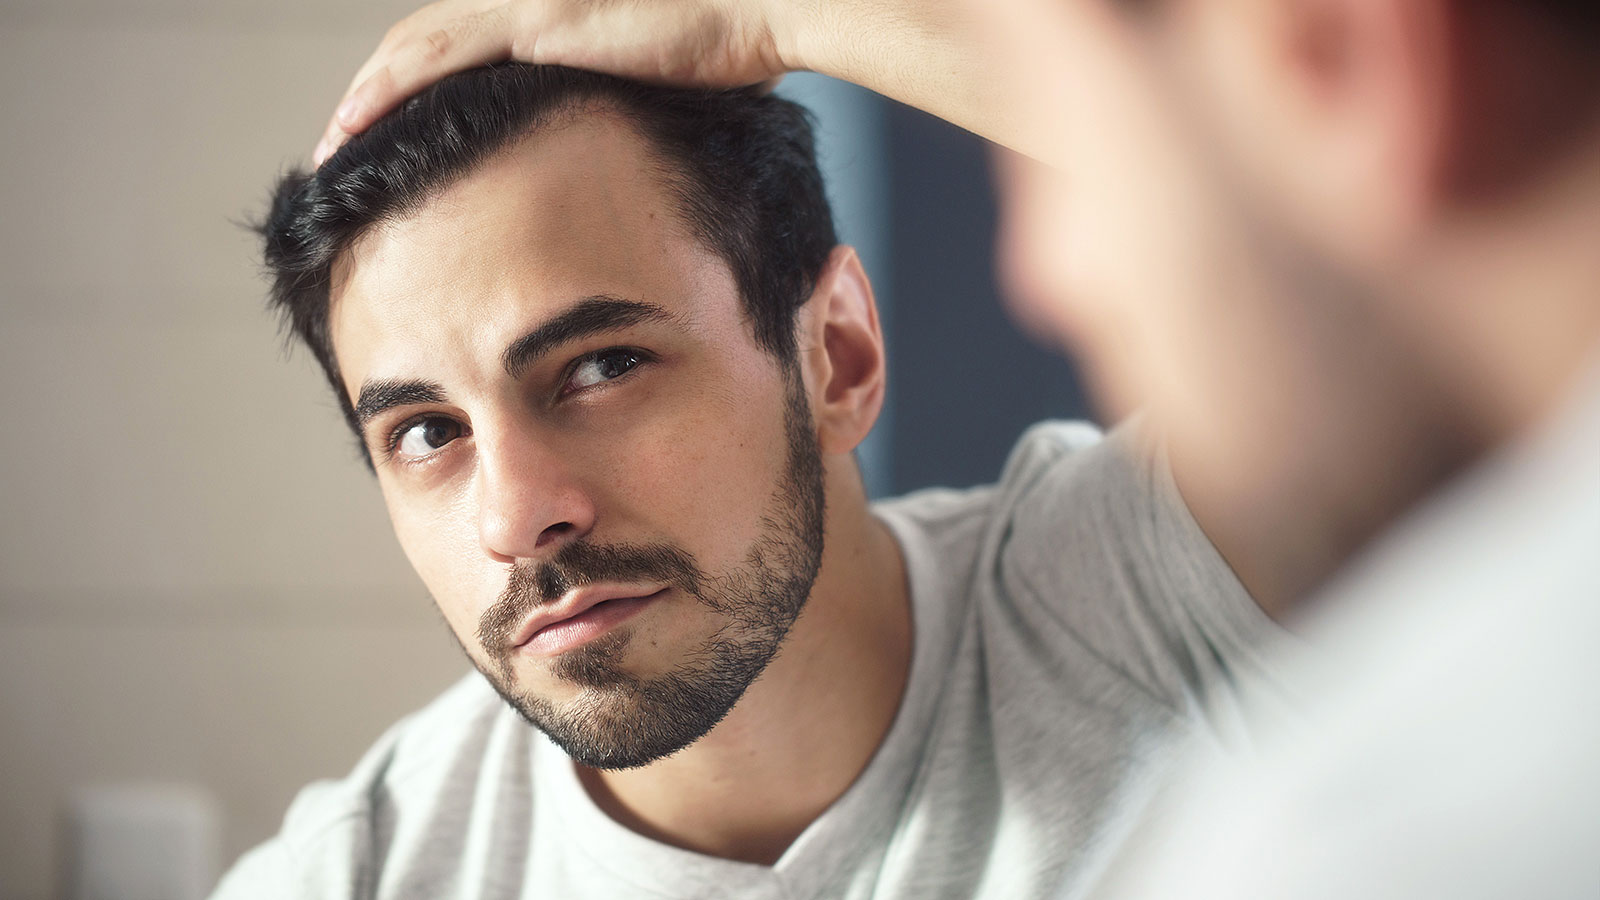 Myths about the causes of hair loss and how to actually prevent it